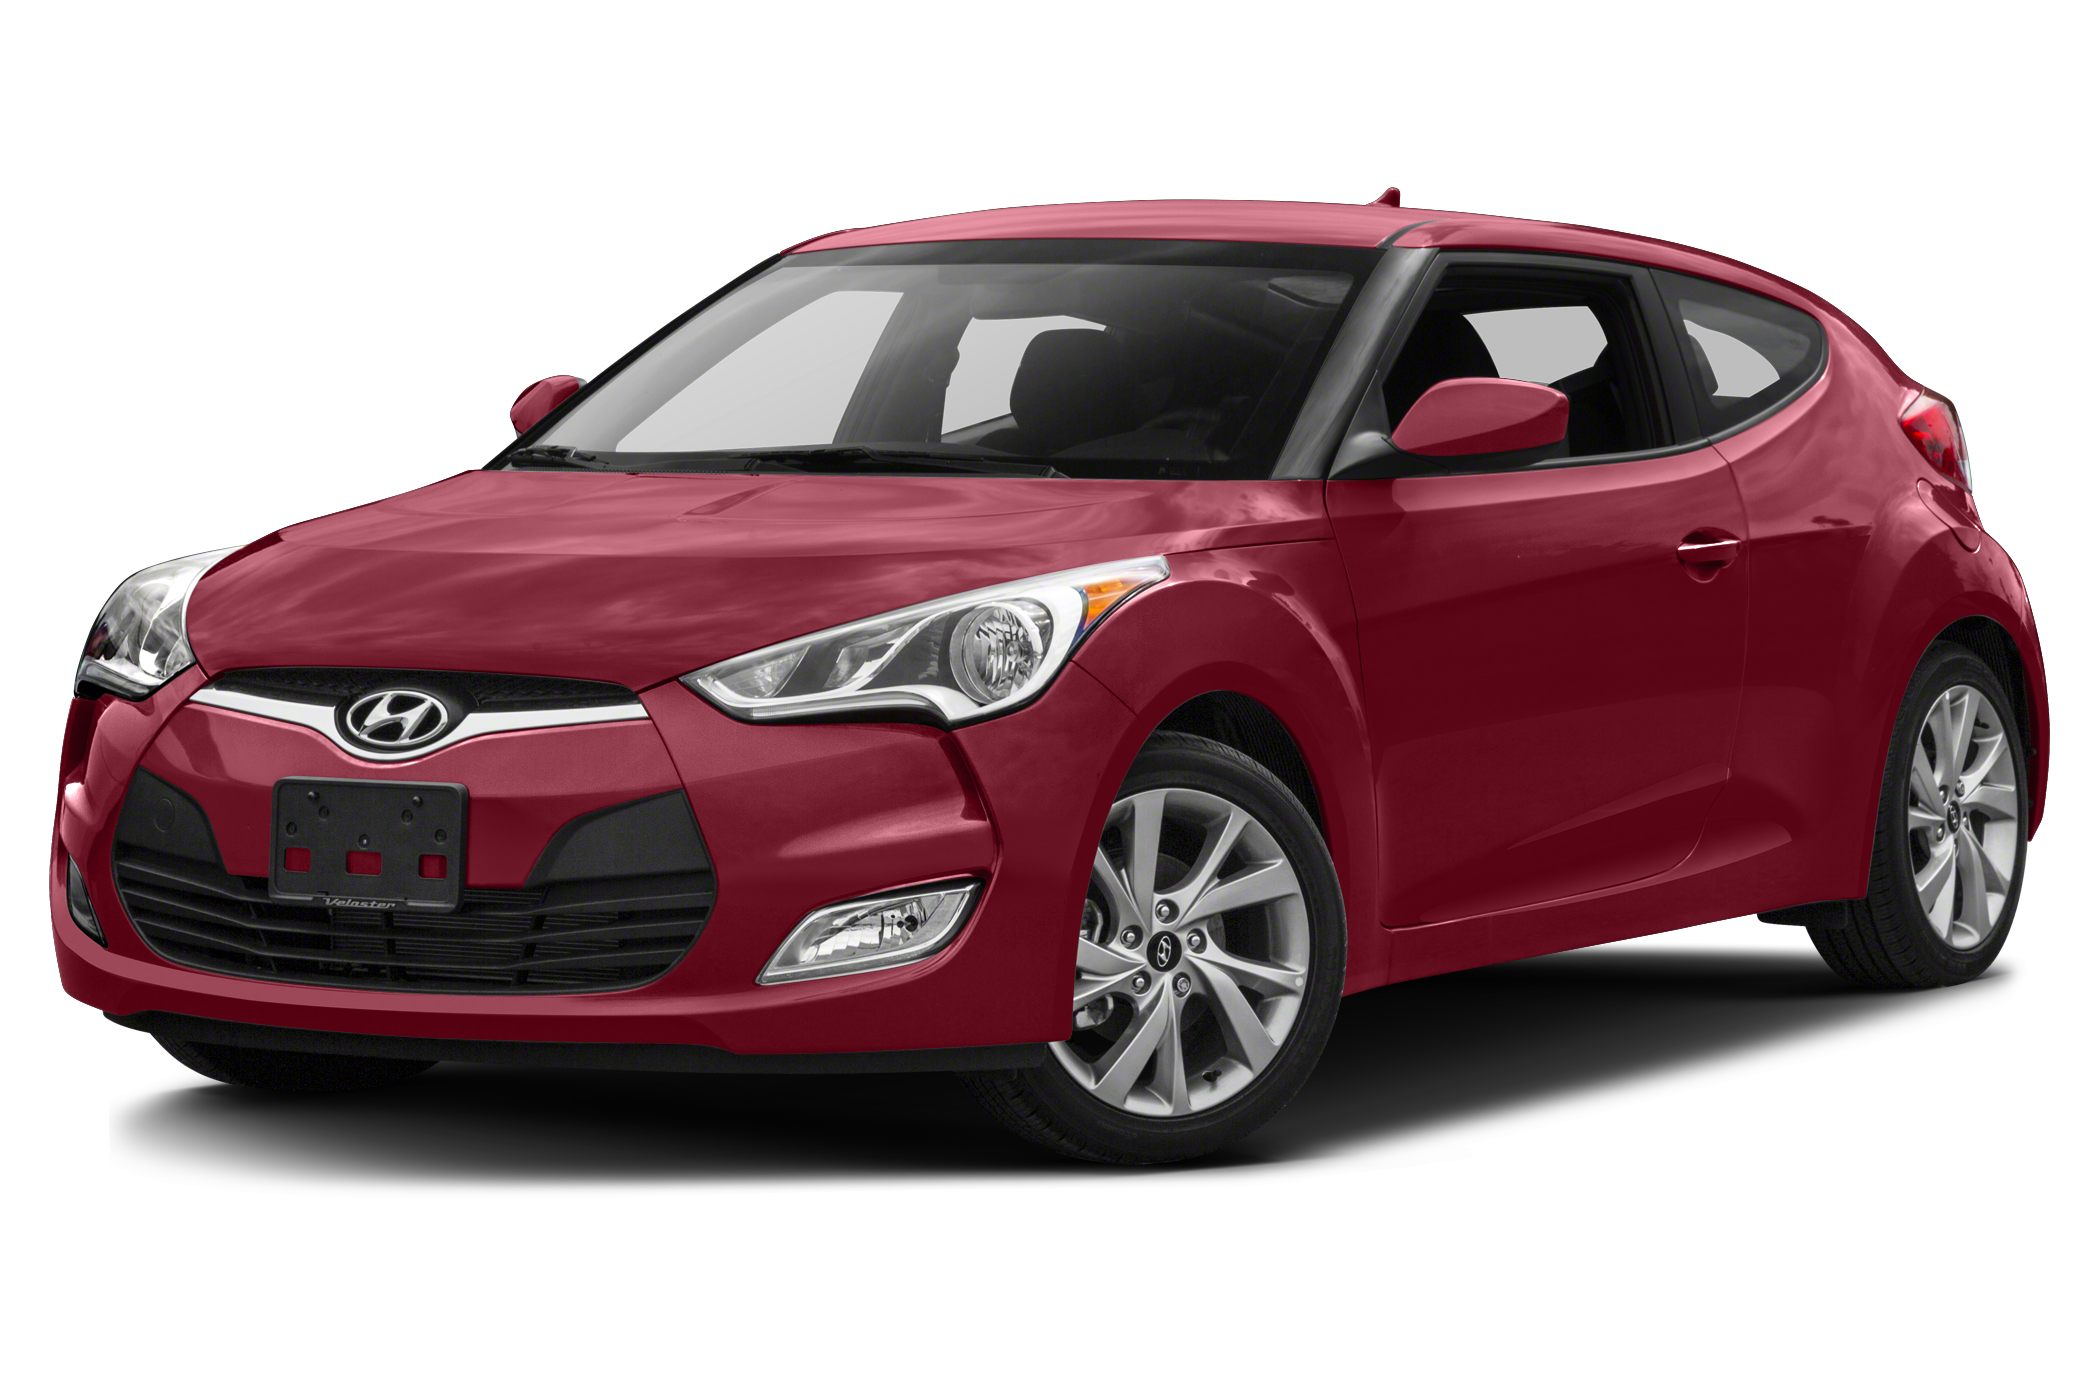 r hyundai and veloster prices specs buy turbo spec hatchback